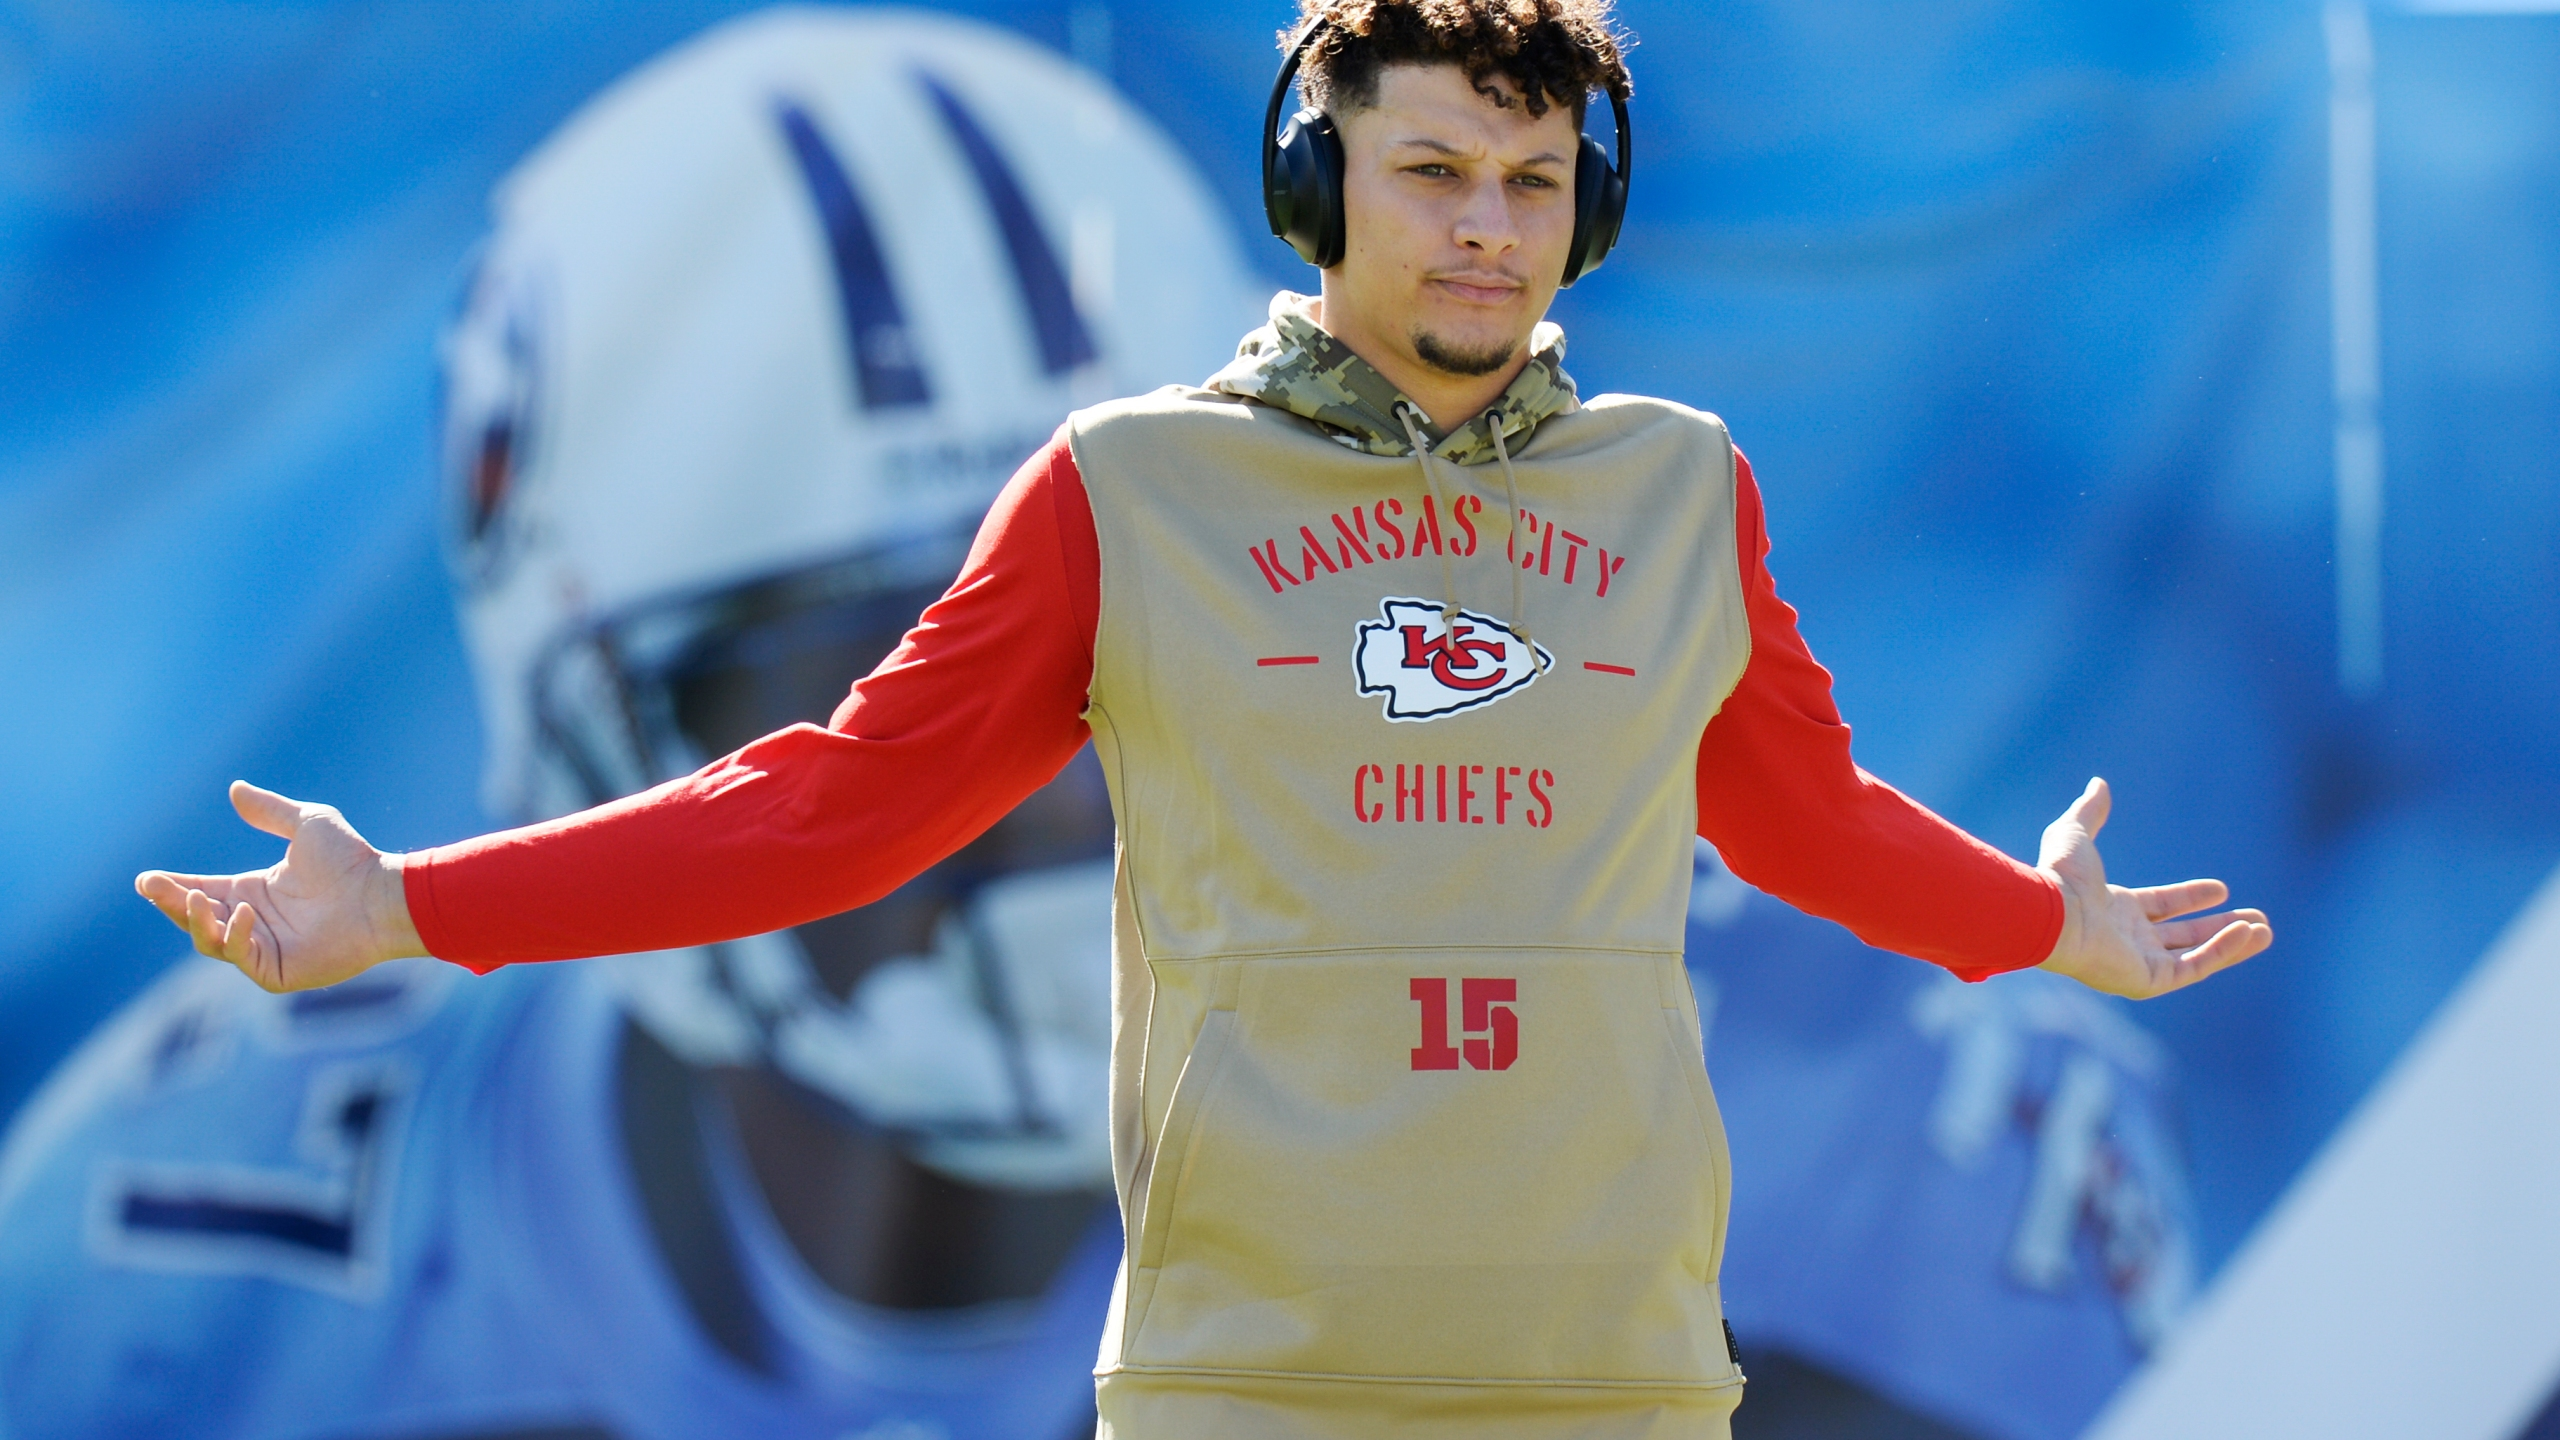 The Latest Chiefs Qb Mahomes Plays Lions Qb Stafford Sits